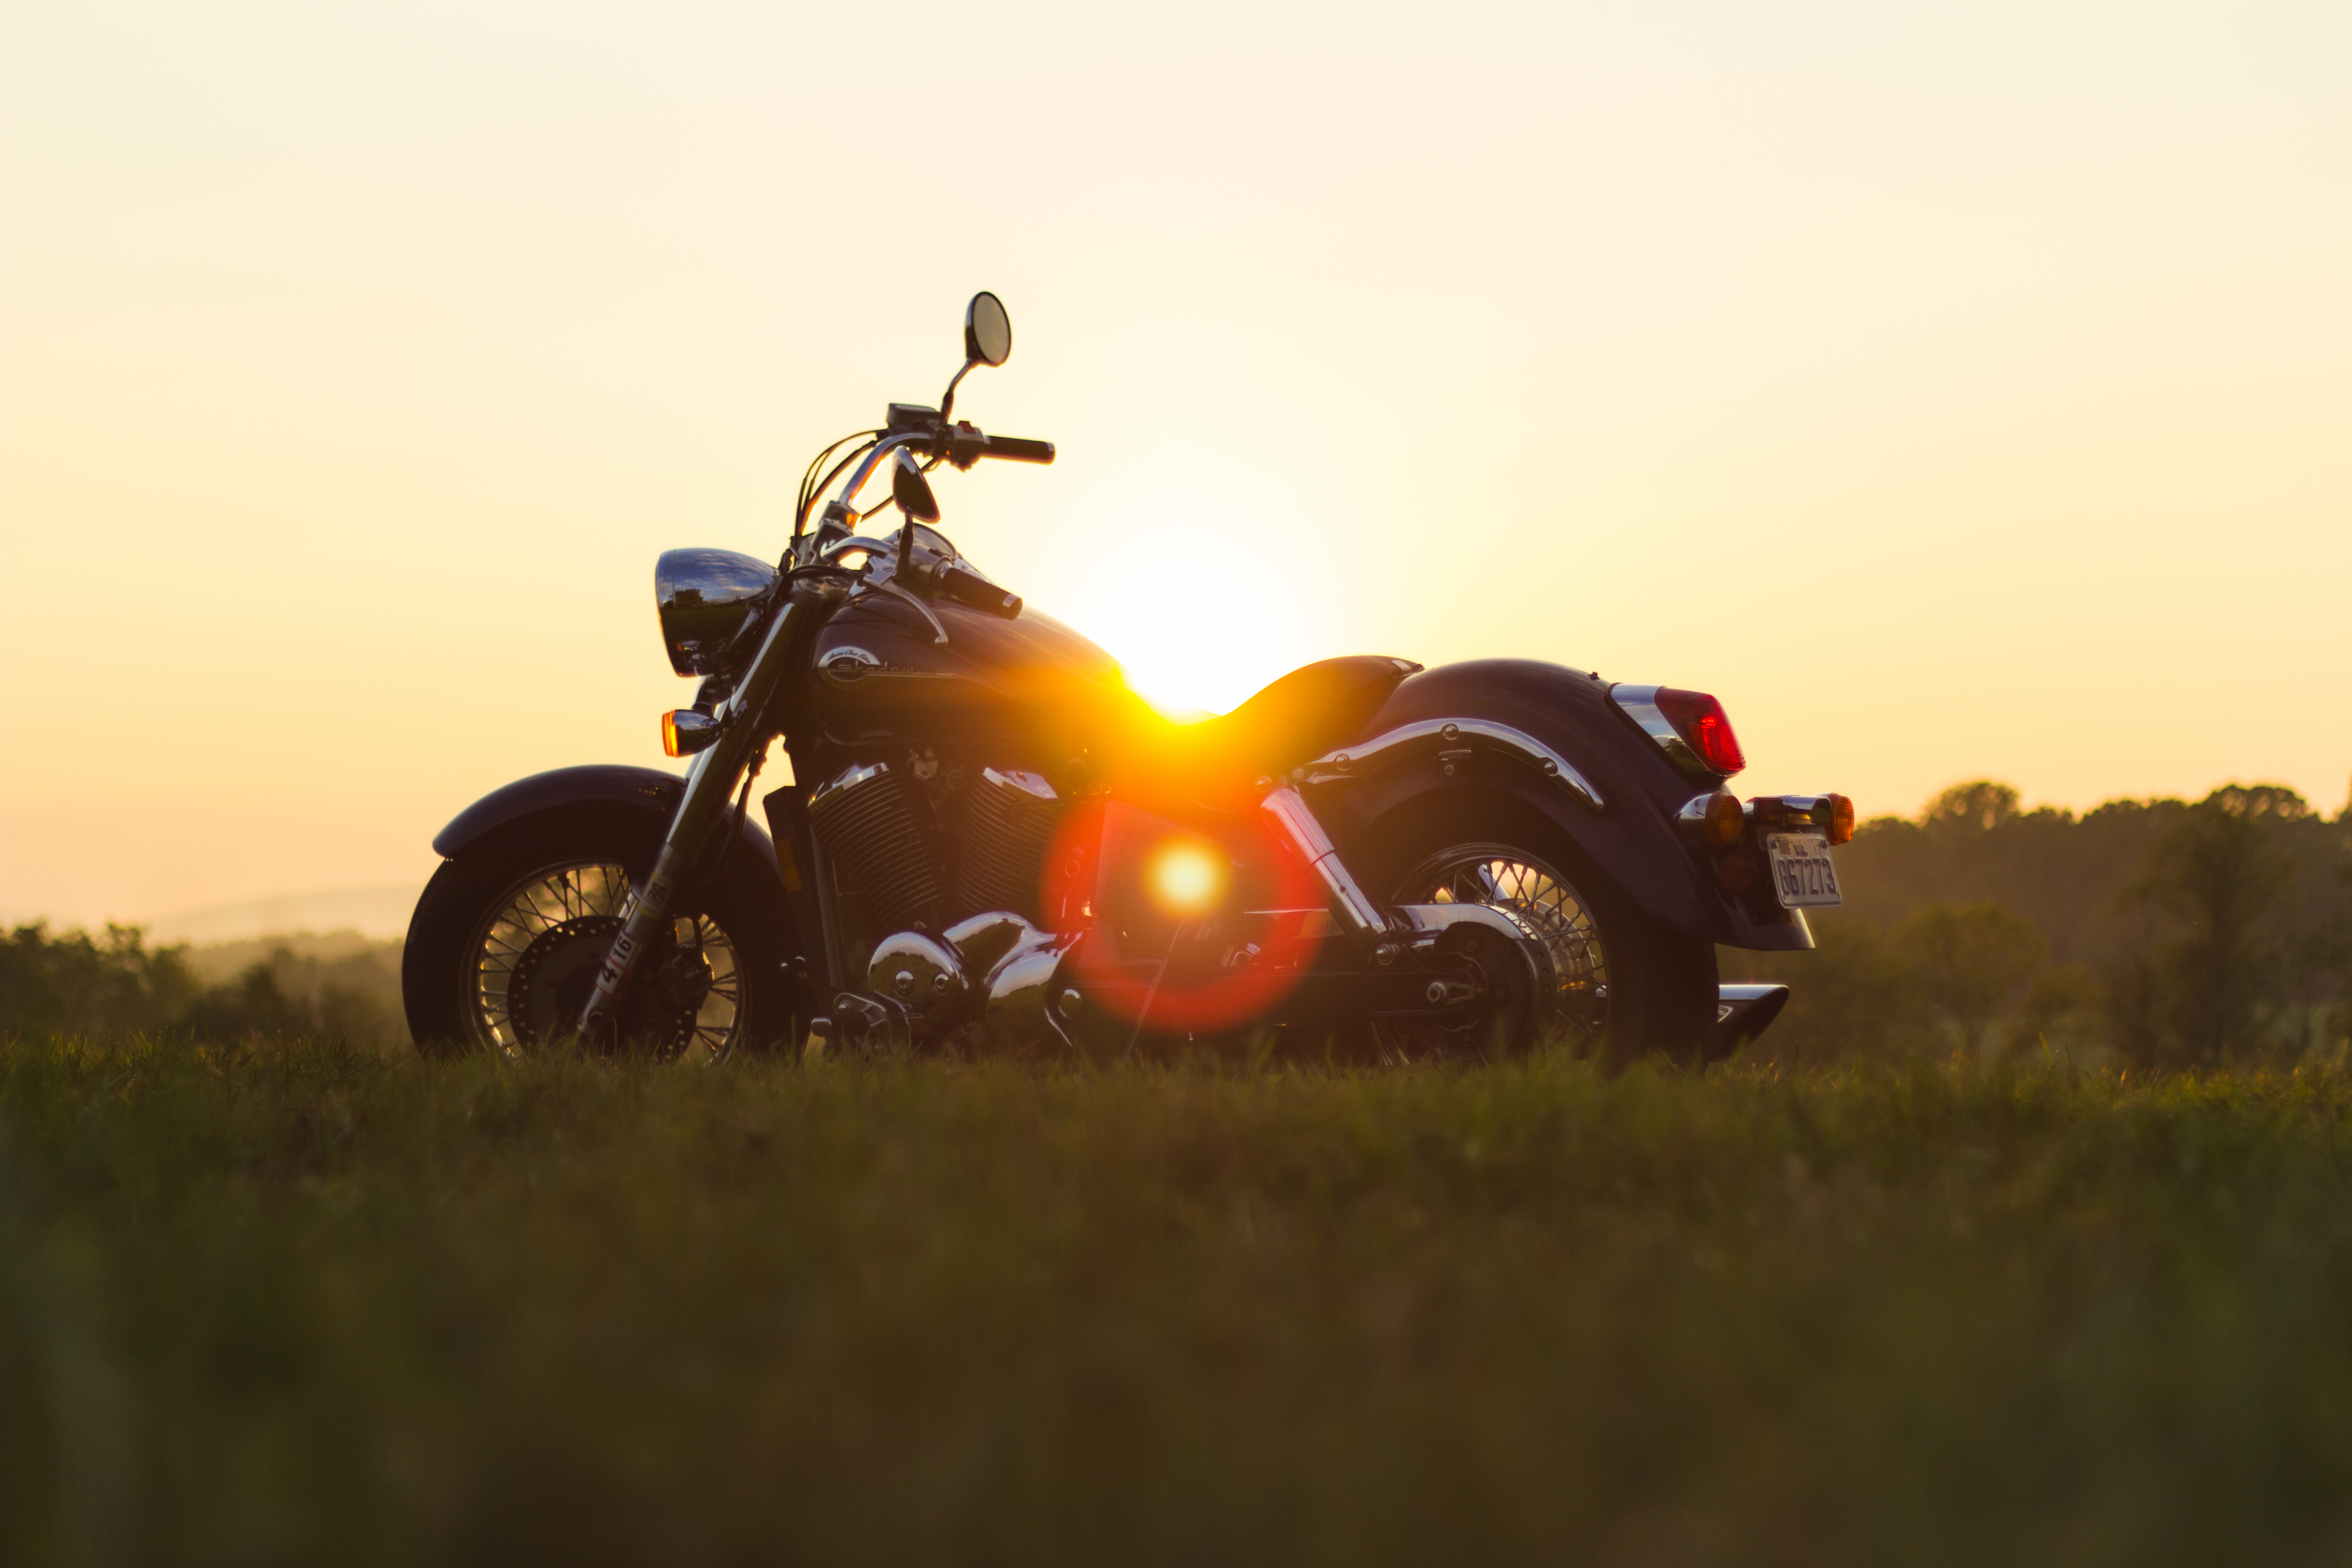 How to get a motorcycle licence in Barcelona